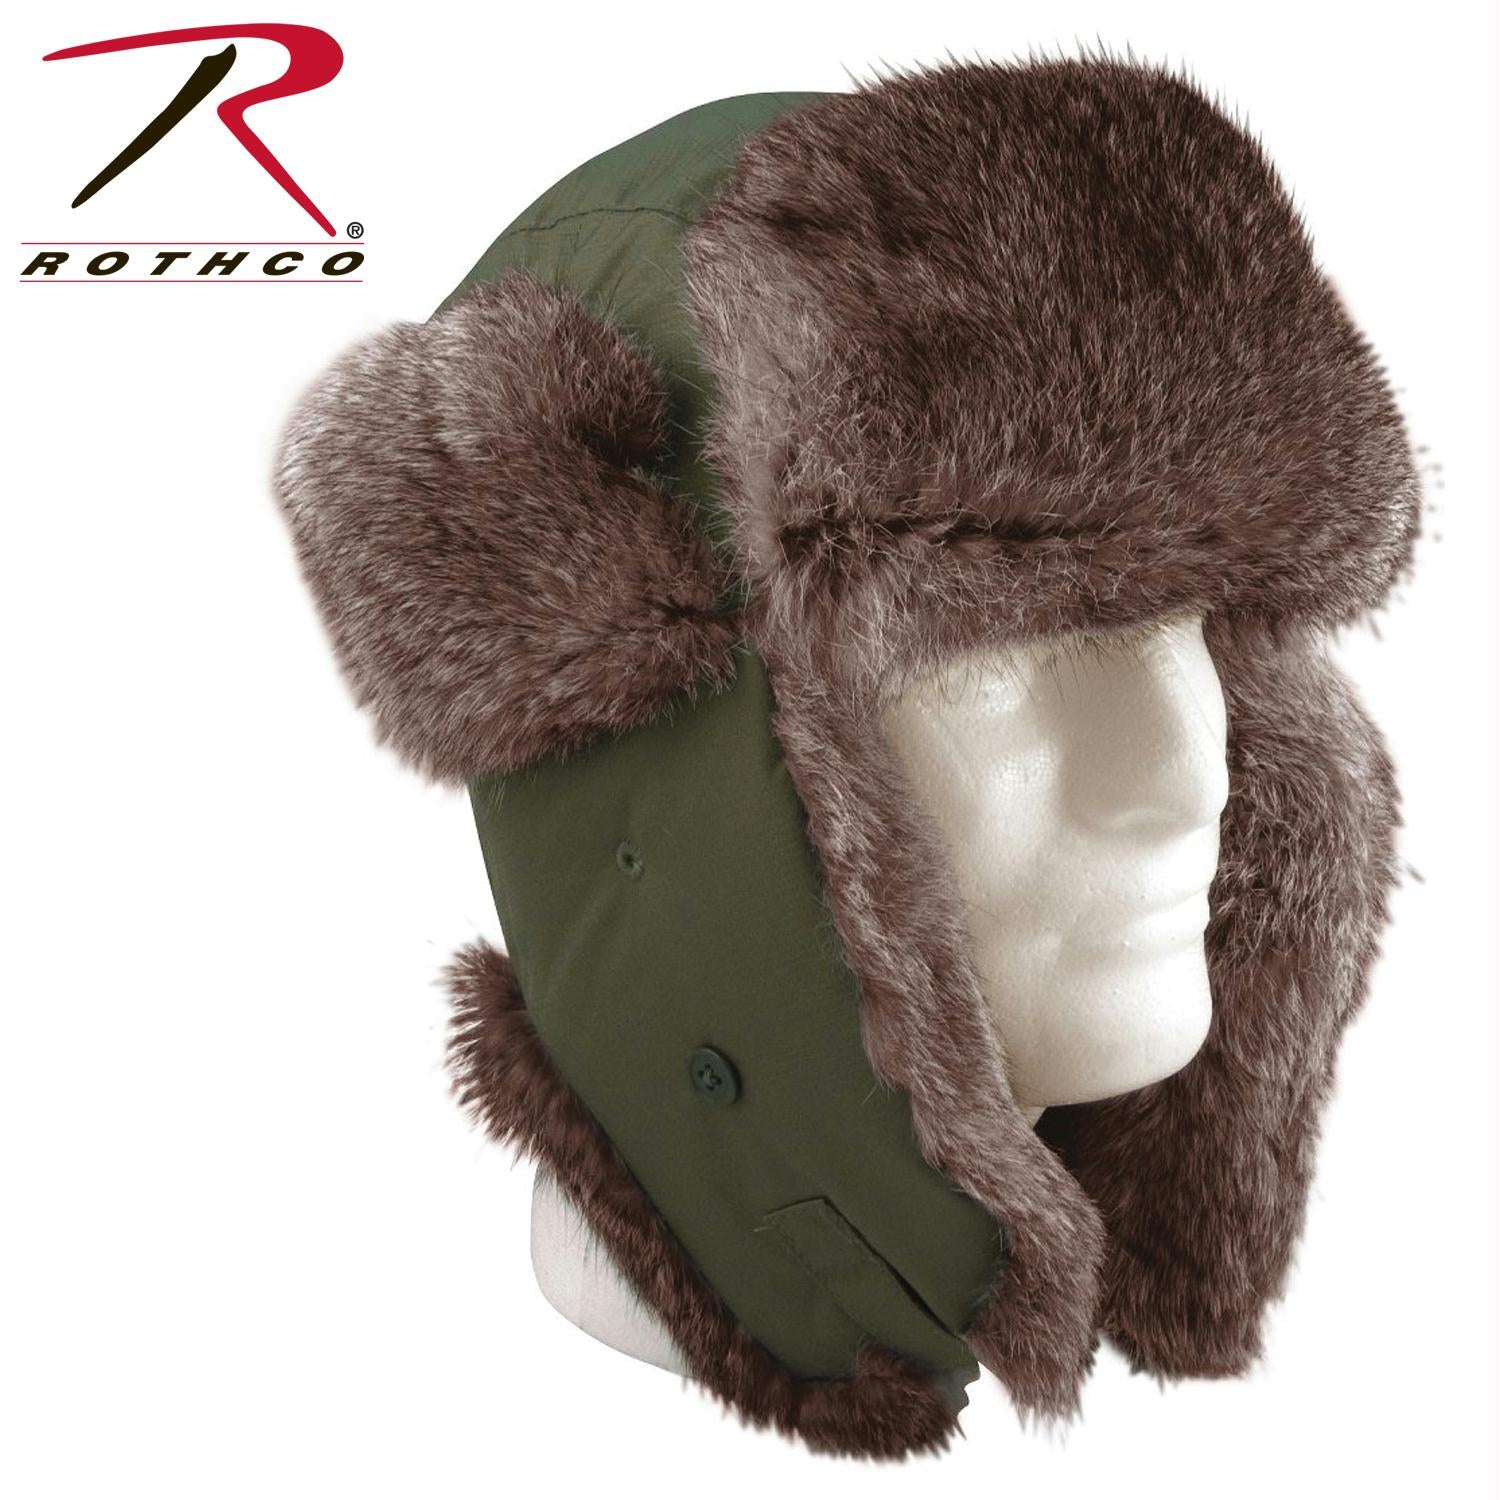 Rothco Fur Flyer's Hat - Olive Drab / 7